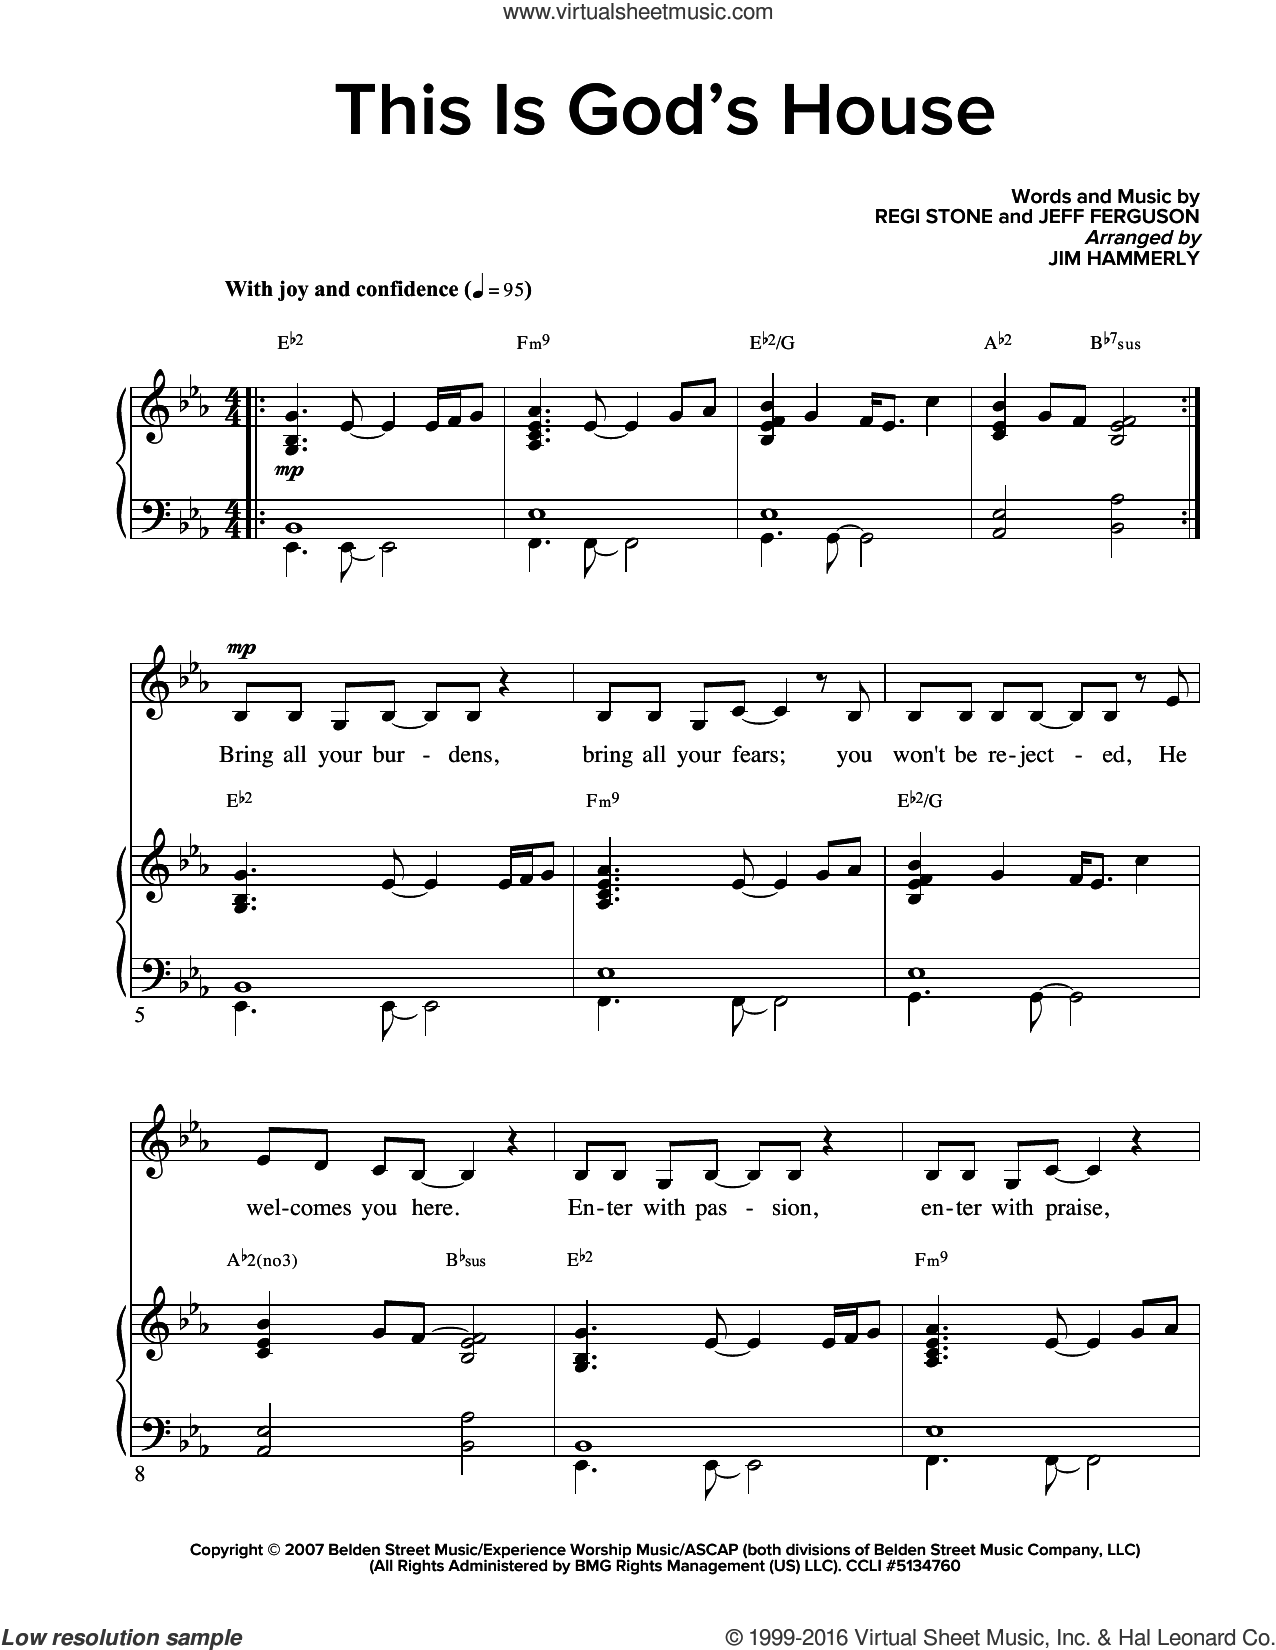 This Is God's House sheet music for voice and piano by Stone and Ferguson. Score Image Preview.